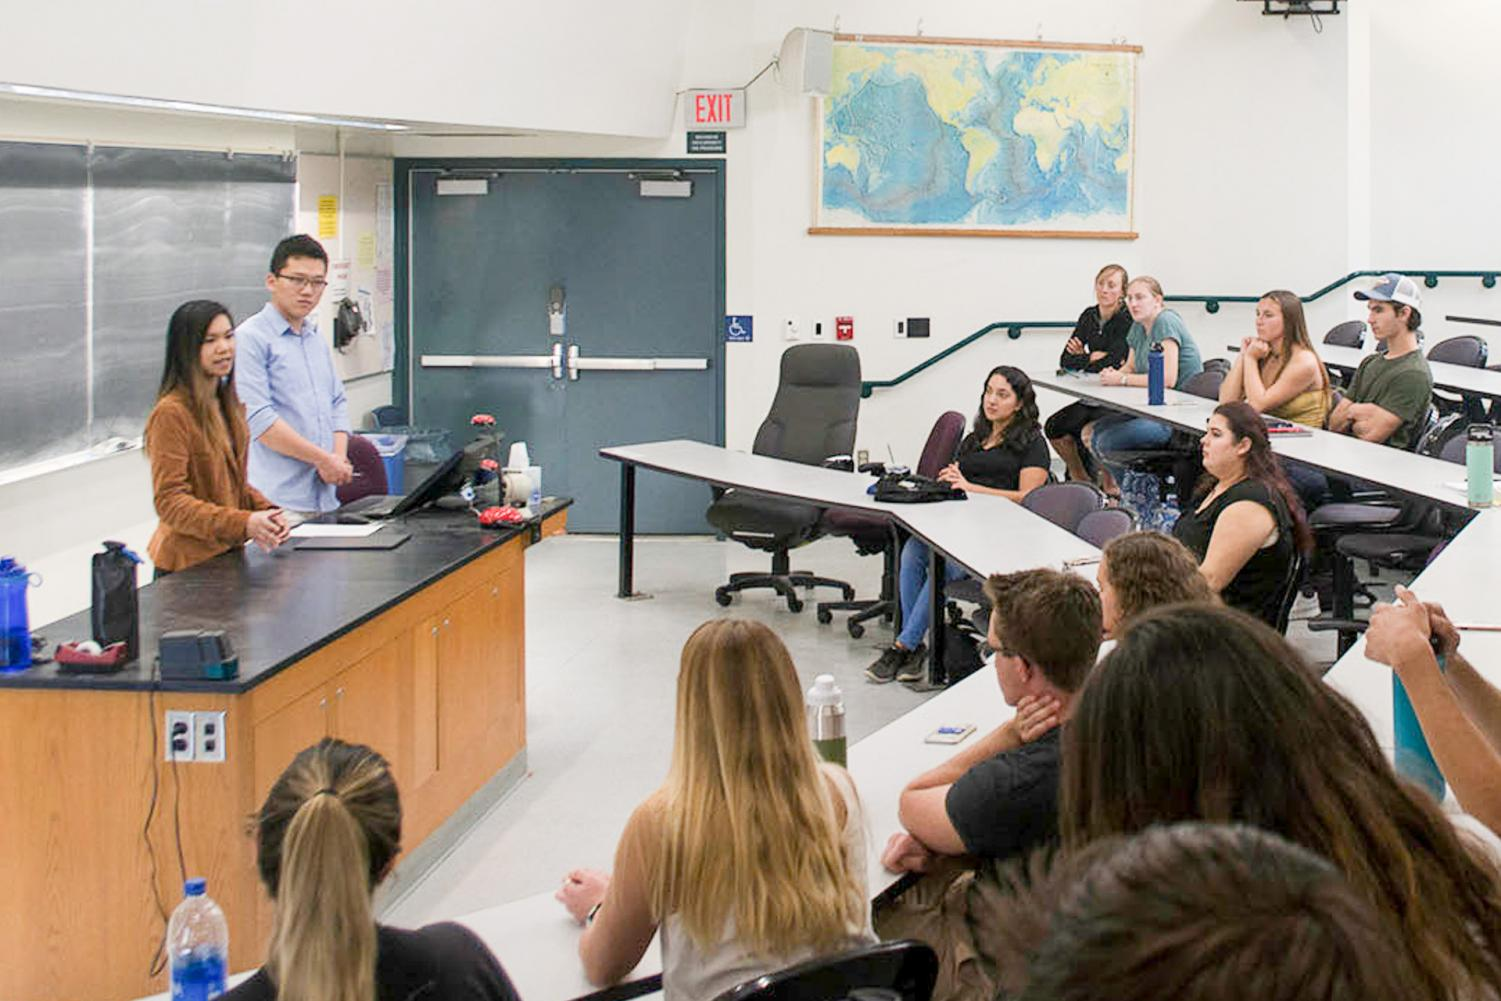 Kathy Pham and Seine Ham lead the first Pre-Med Club meeting on Jan. 25 at the Earth and Biological Sciences Building in Room 309 at Santa Barbara City College.